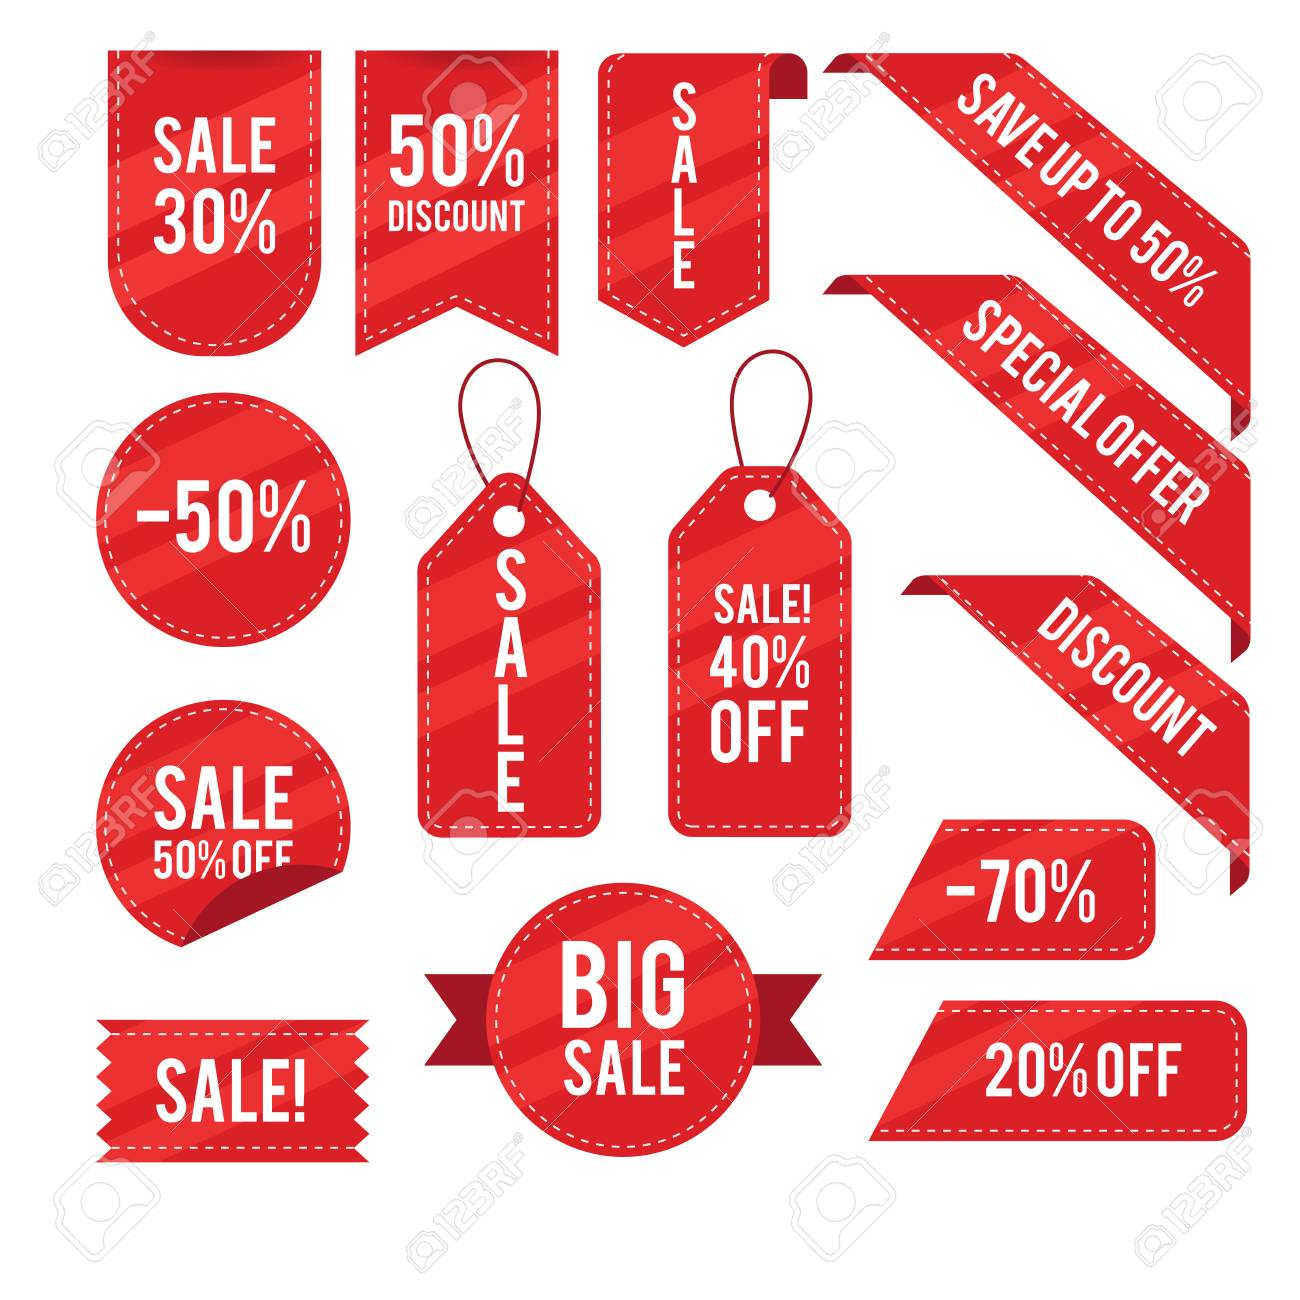 Sales,discounts,tags vector design collection - 105234023